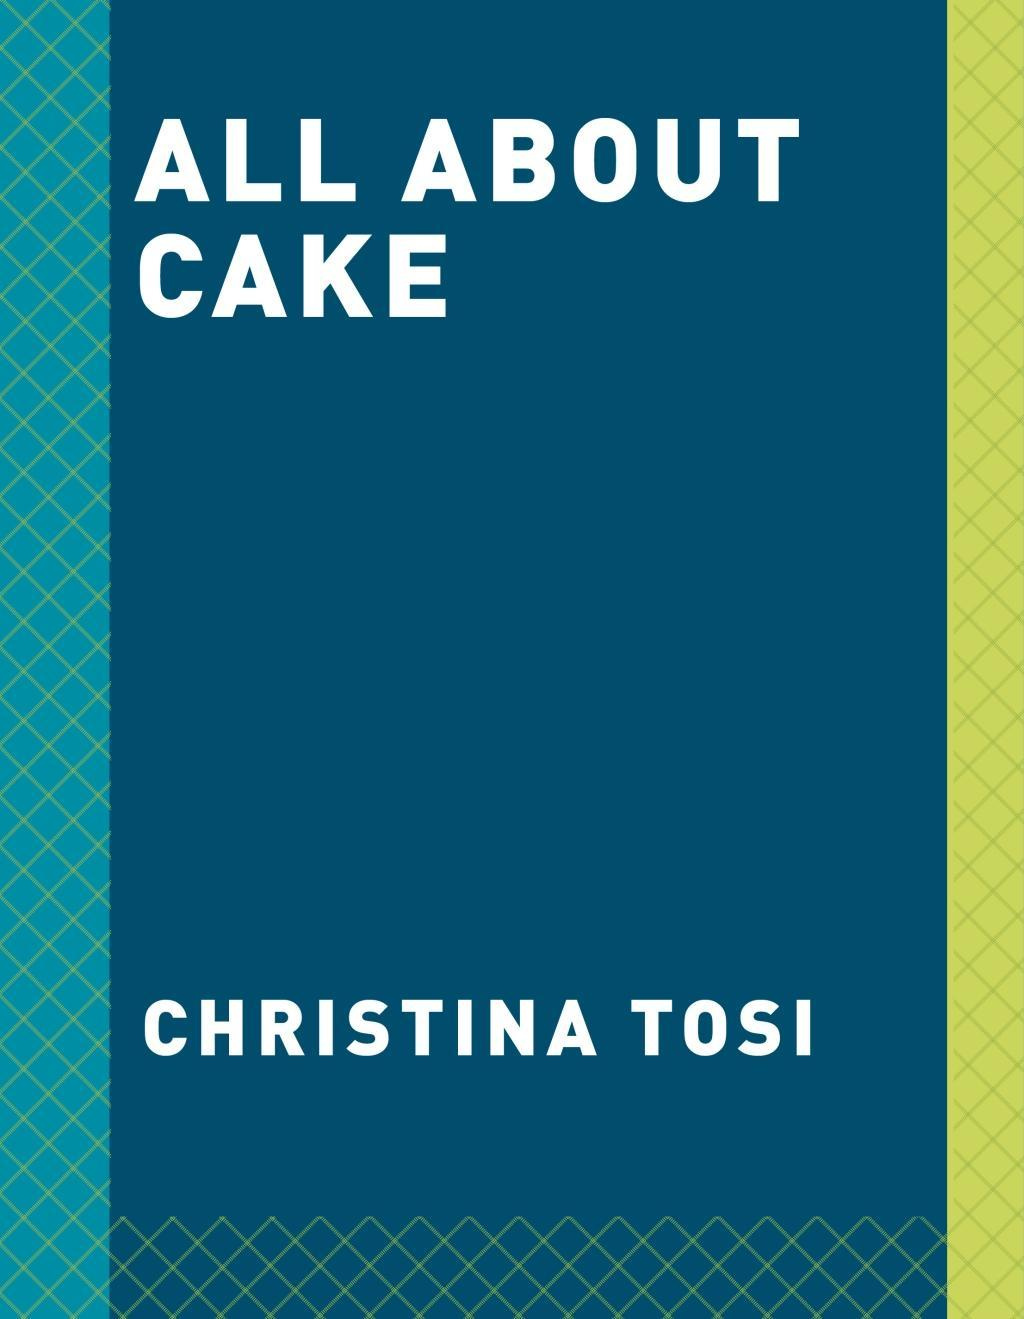 All about Cake by Christina Tosi, ISBN: 9780451499523